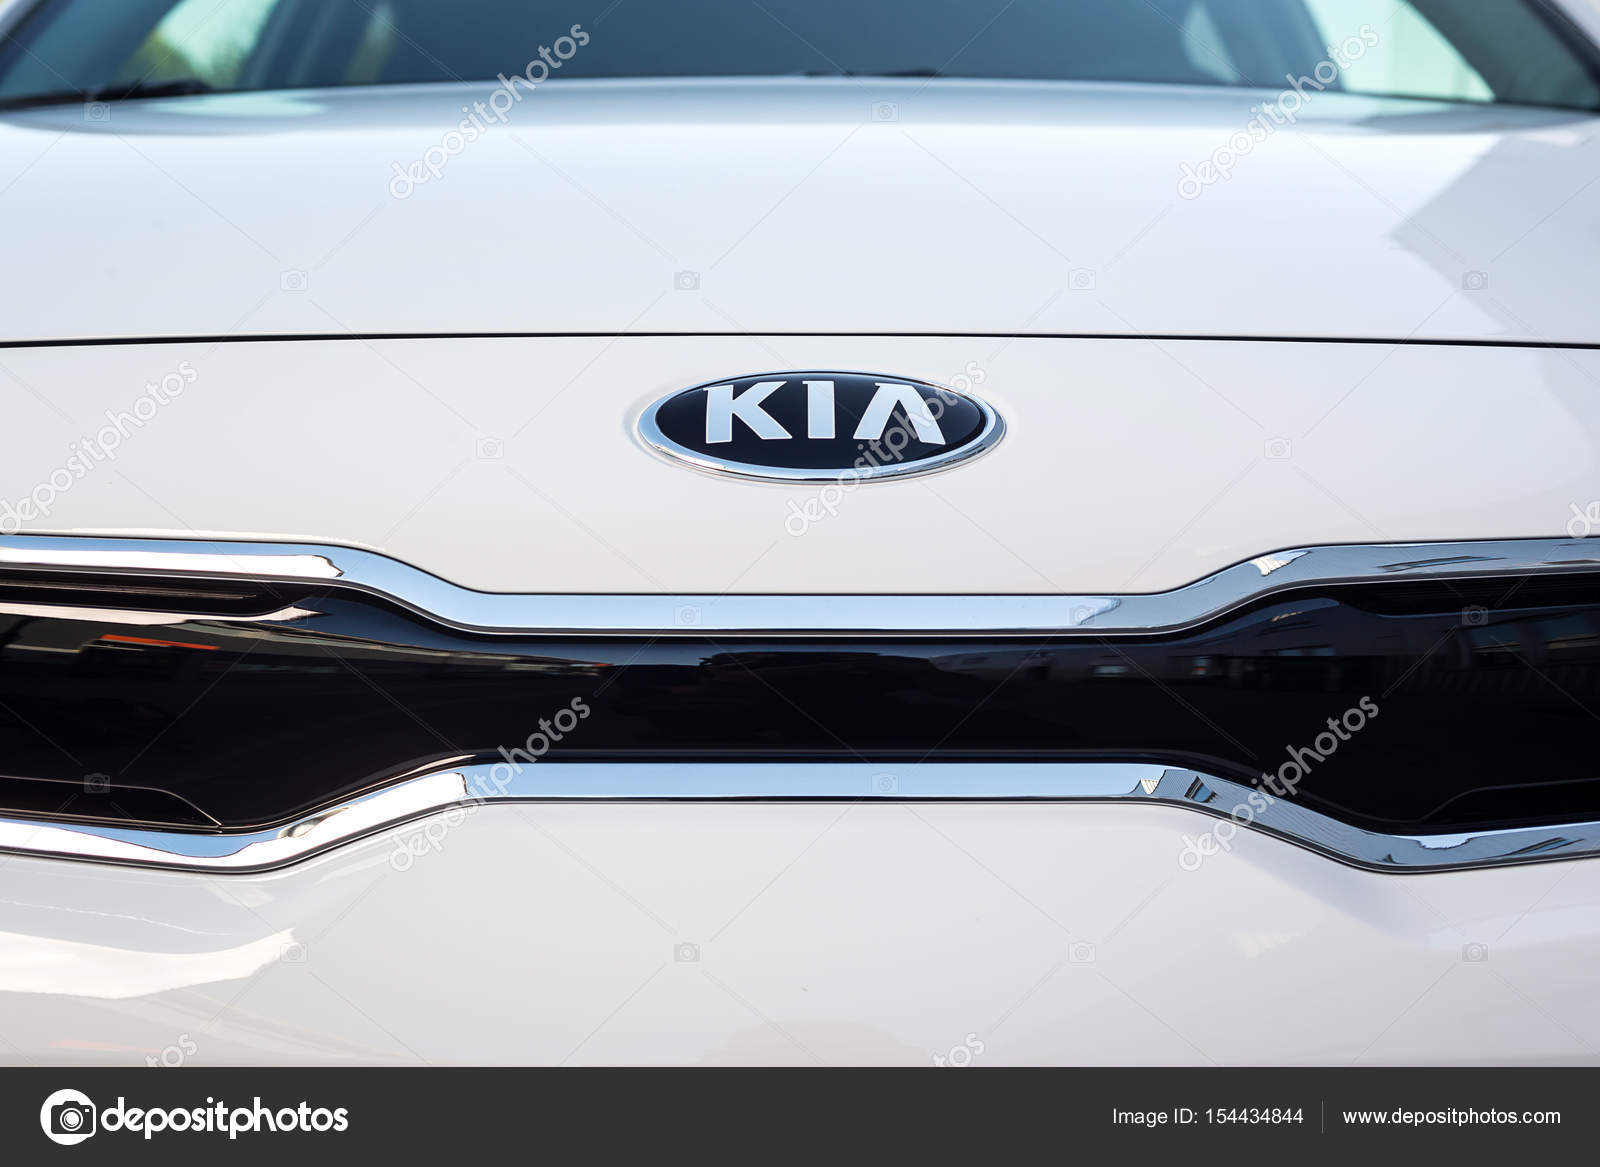 k cars what grey comments seeing this lexus m around new the like badge r emblem im large logo kia a i are design with badging